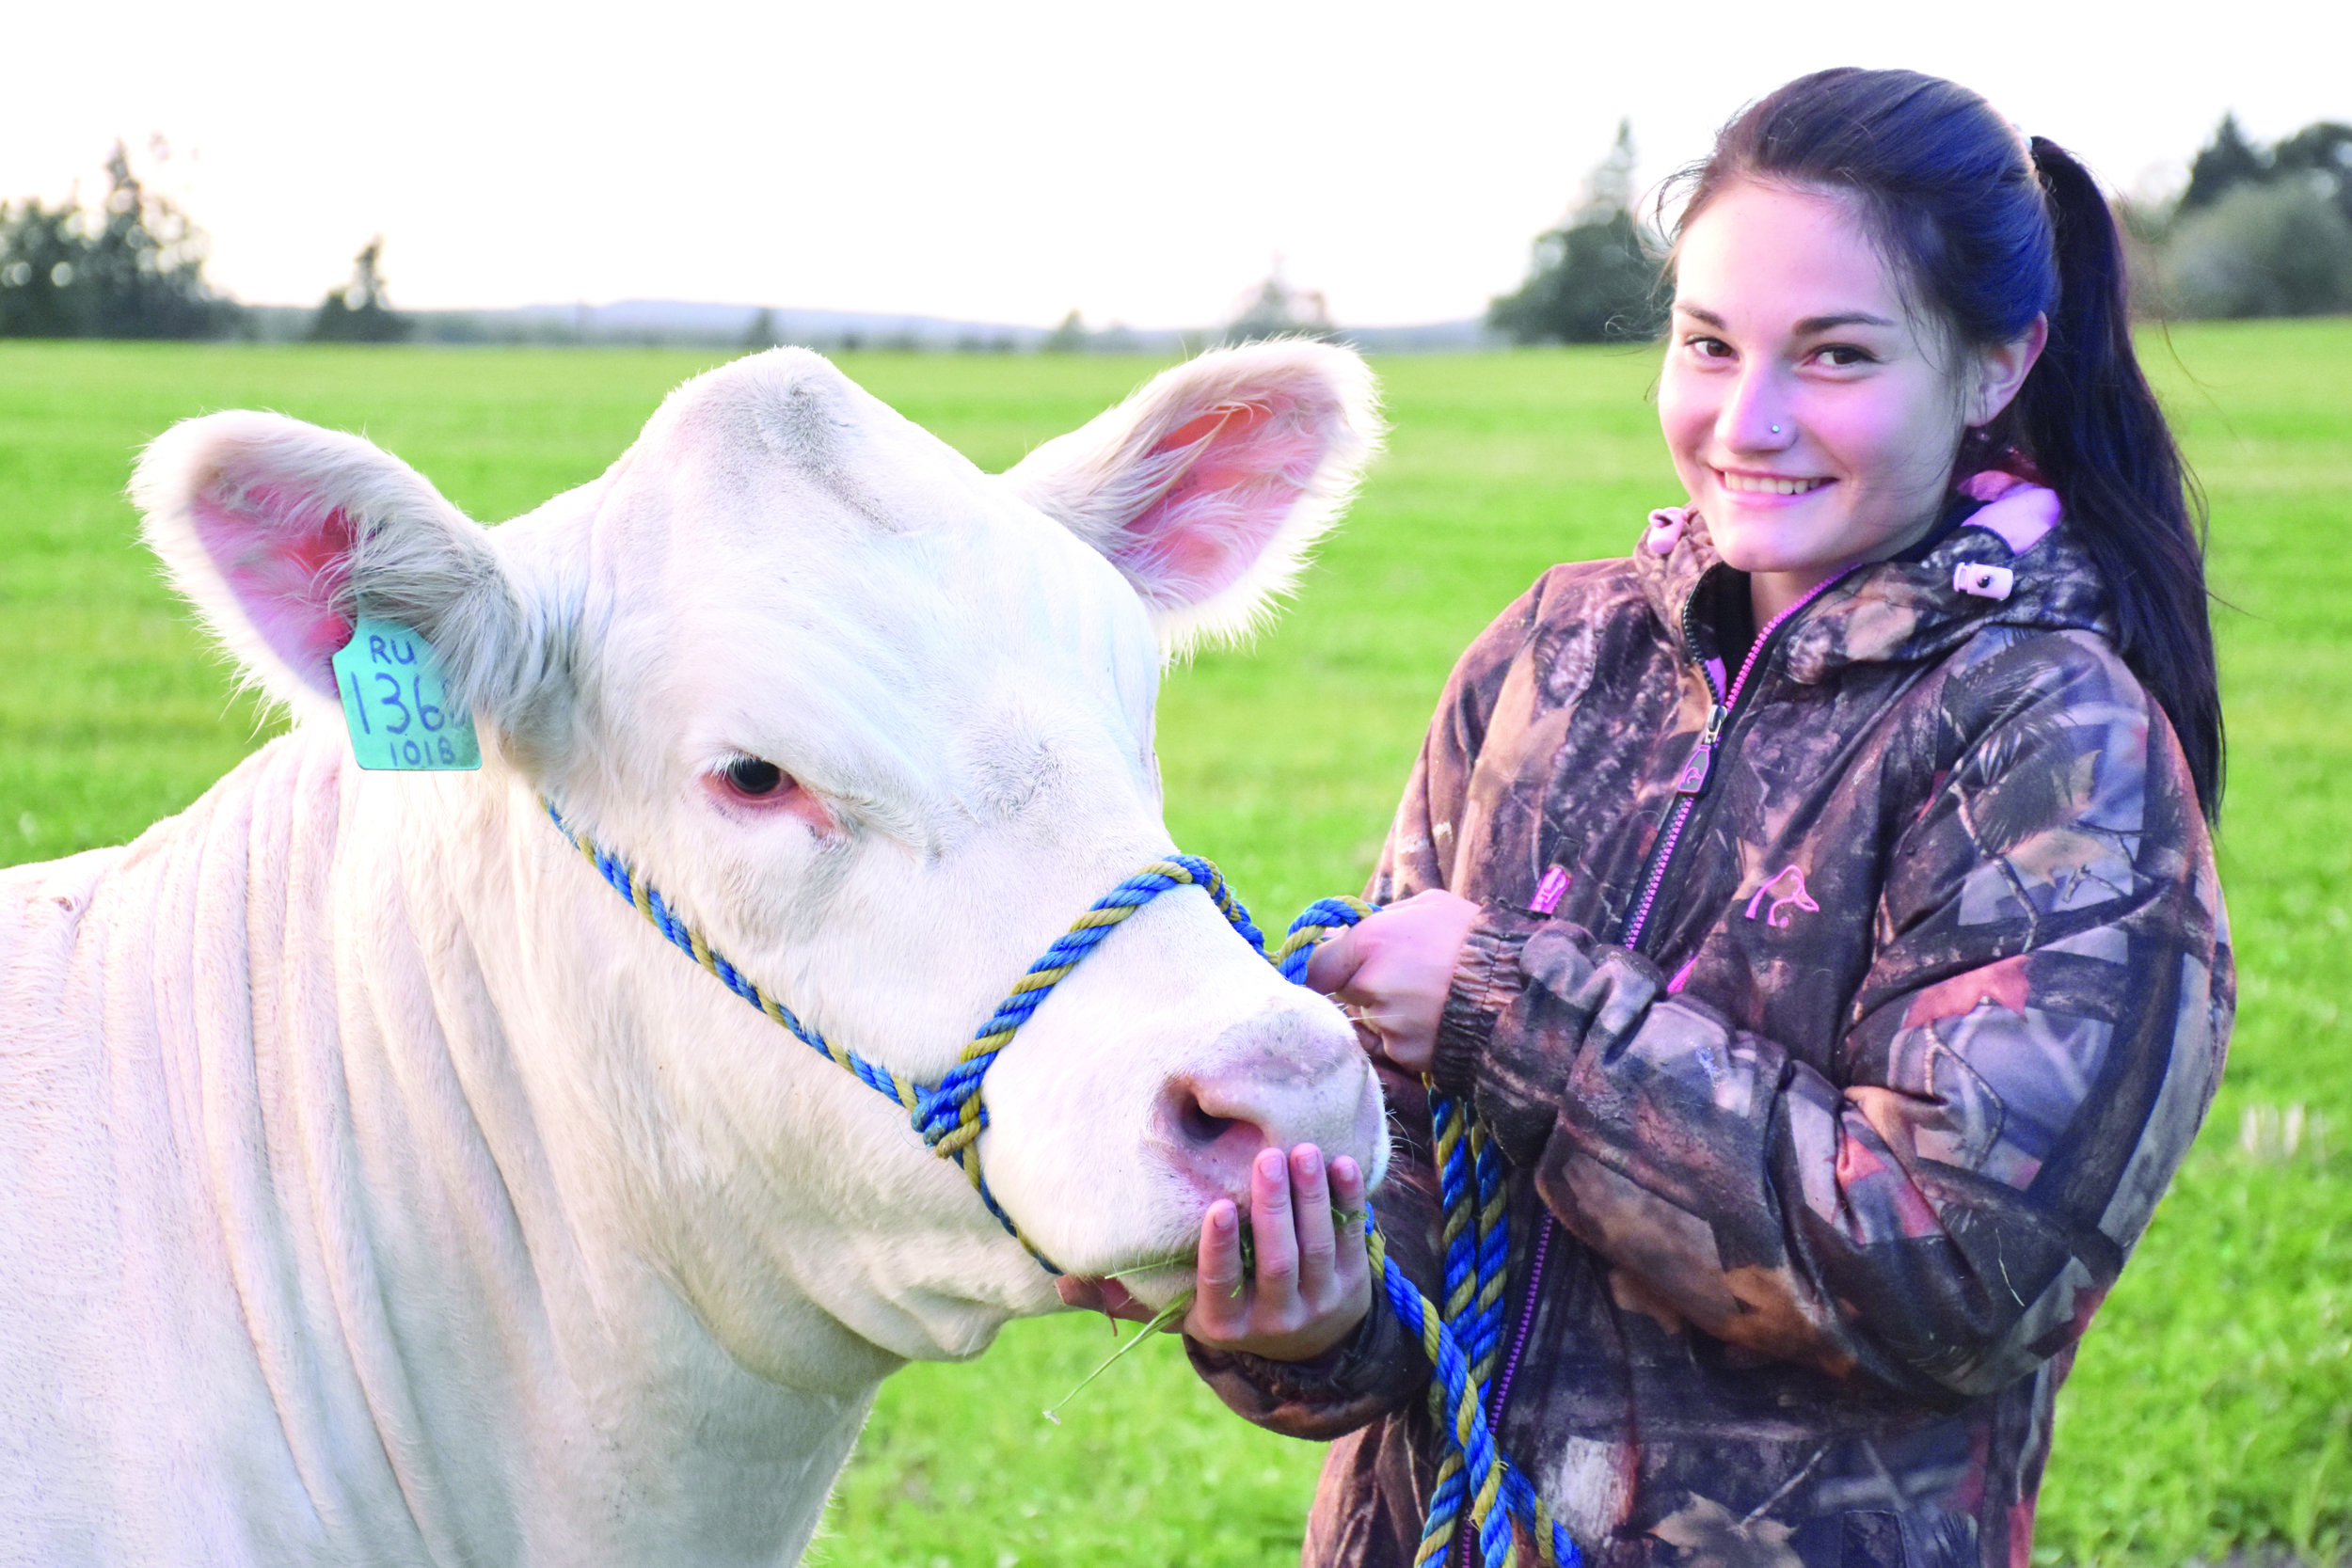 Alex Smith and her Charolais heifer Drama Queen at Balamore Farm in Great Village, N.S., in early October. (Carolyn Cooper photo)